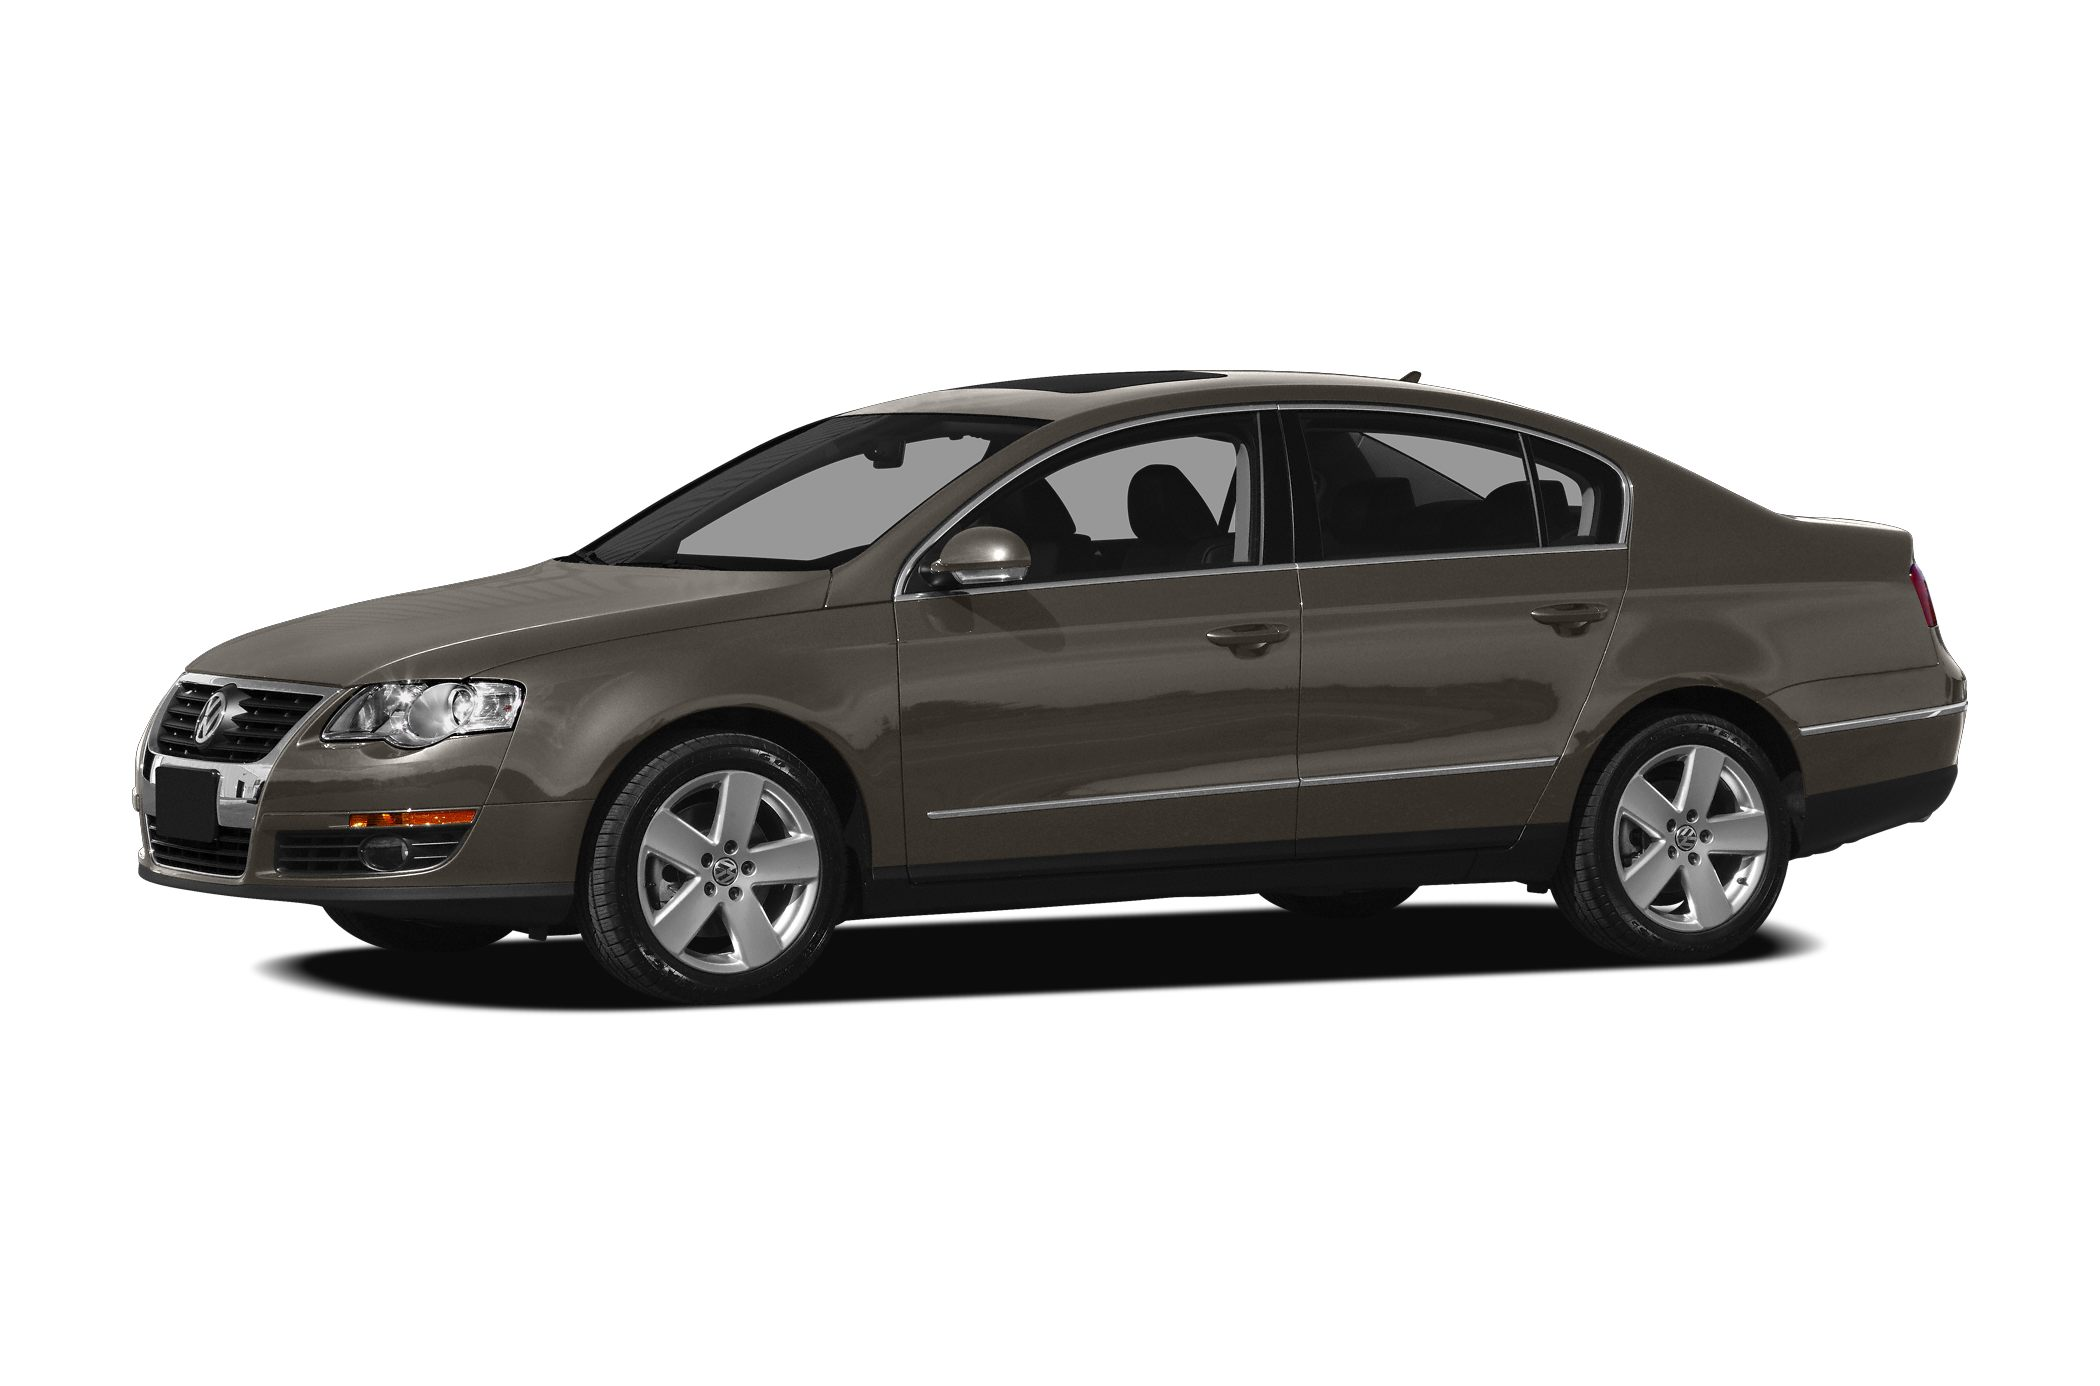 2010 Volkswagen Passat Komfort Sedan for sale in Keene for $13,495 with 48,968 miles.